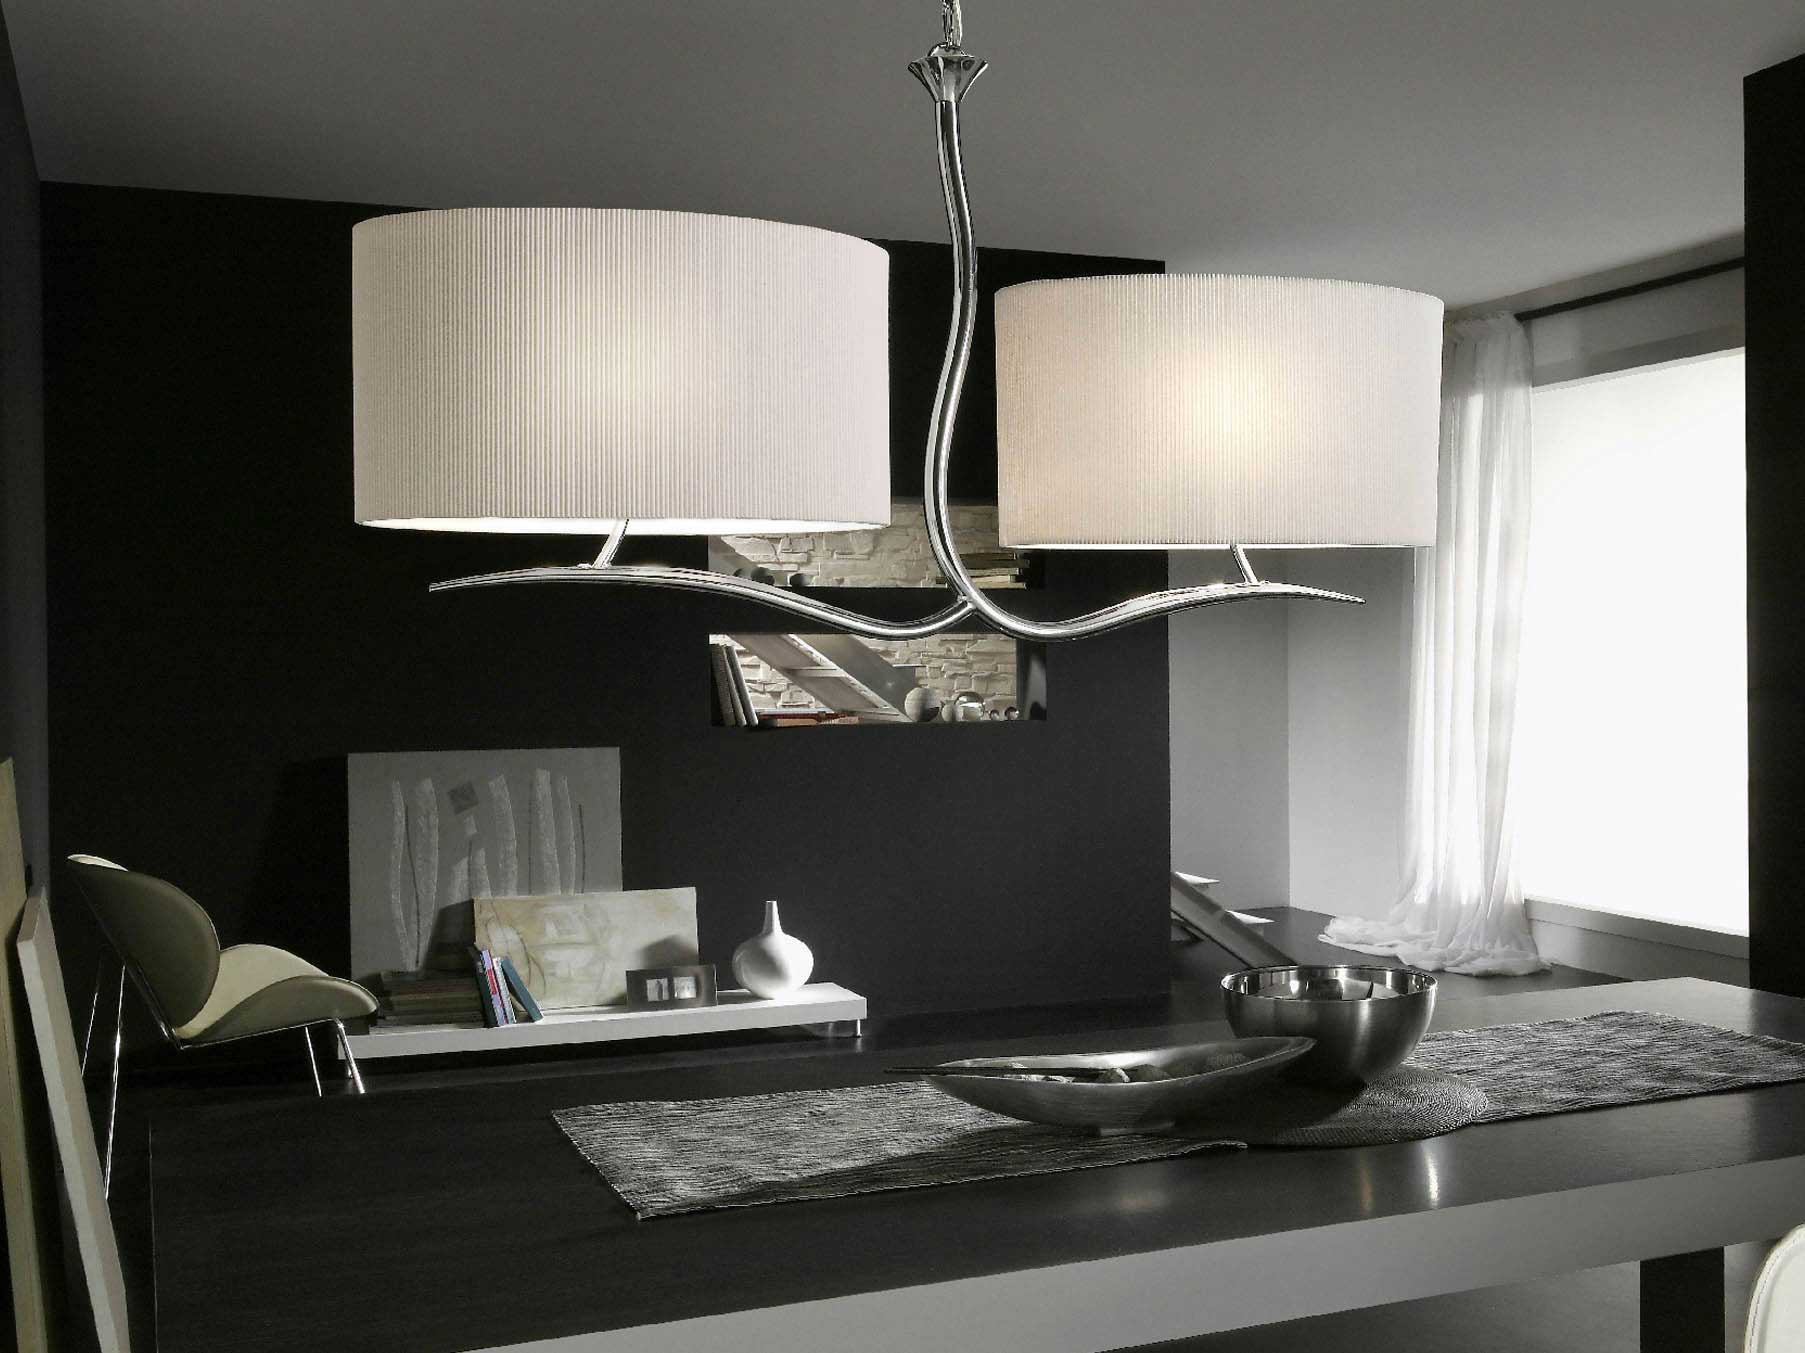 mantra esstischlampe eve online kaufen. Black Bedroom Furniture Sets. Home Design Ideas